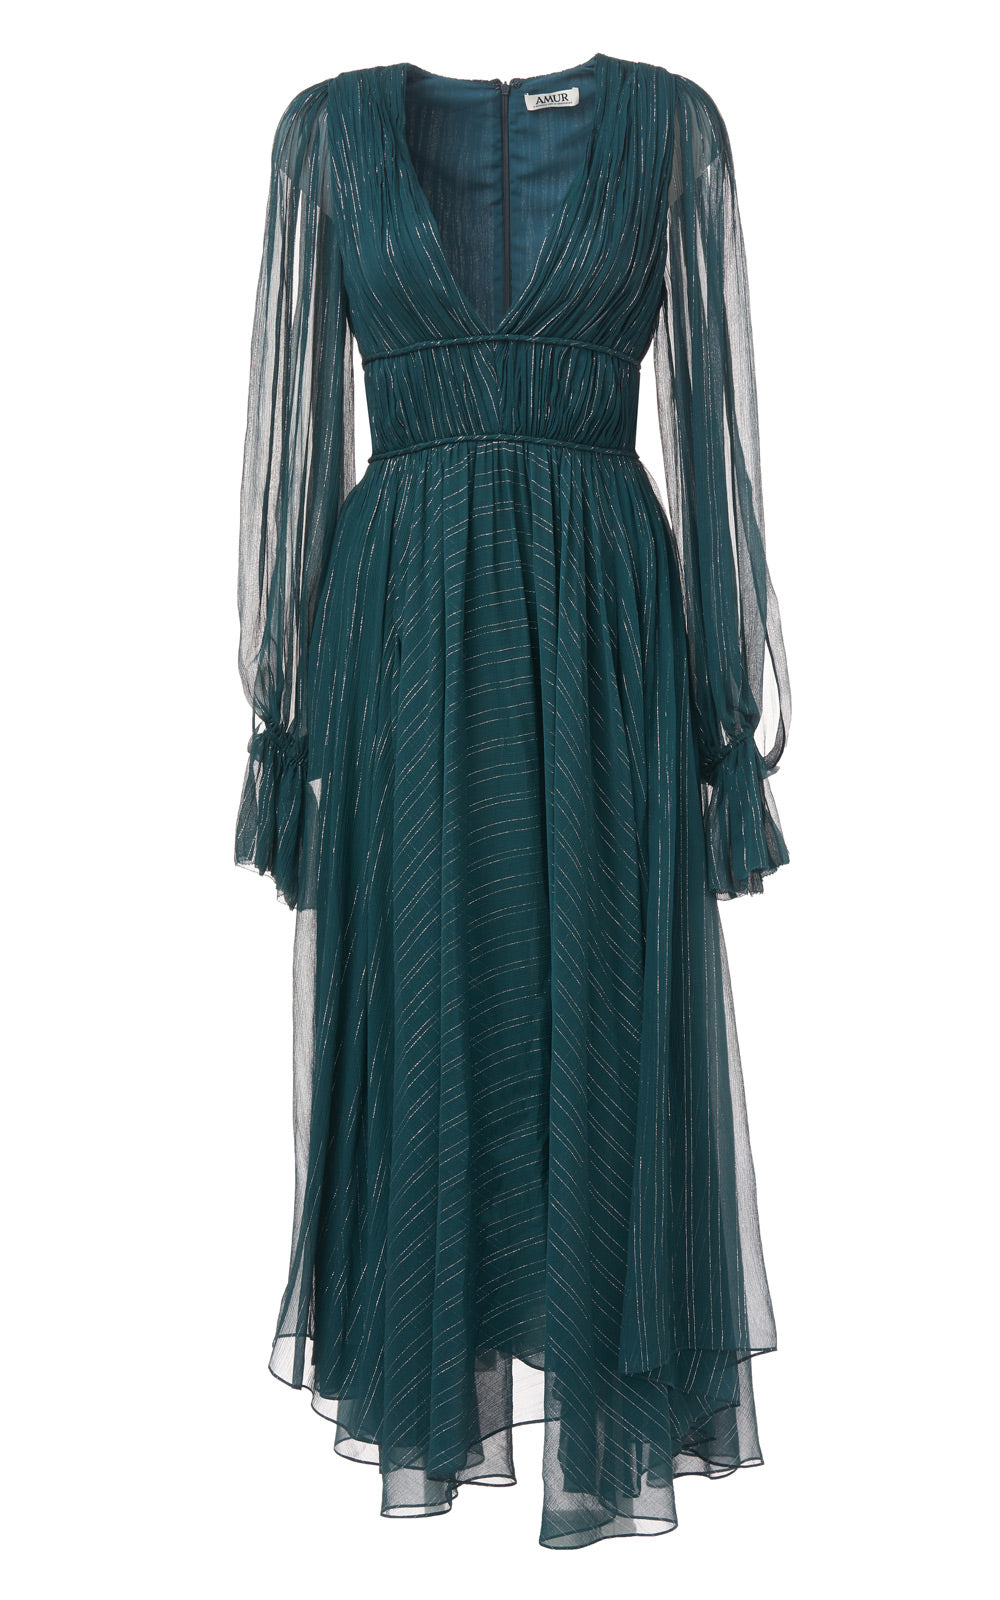 Heidi Deep Emerald Green Plunging Deep V-Neck Metallic Stripe Long Sleeve Silk Dress